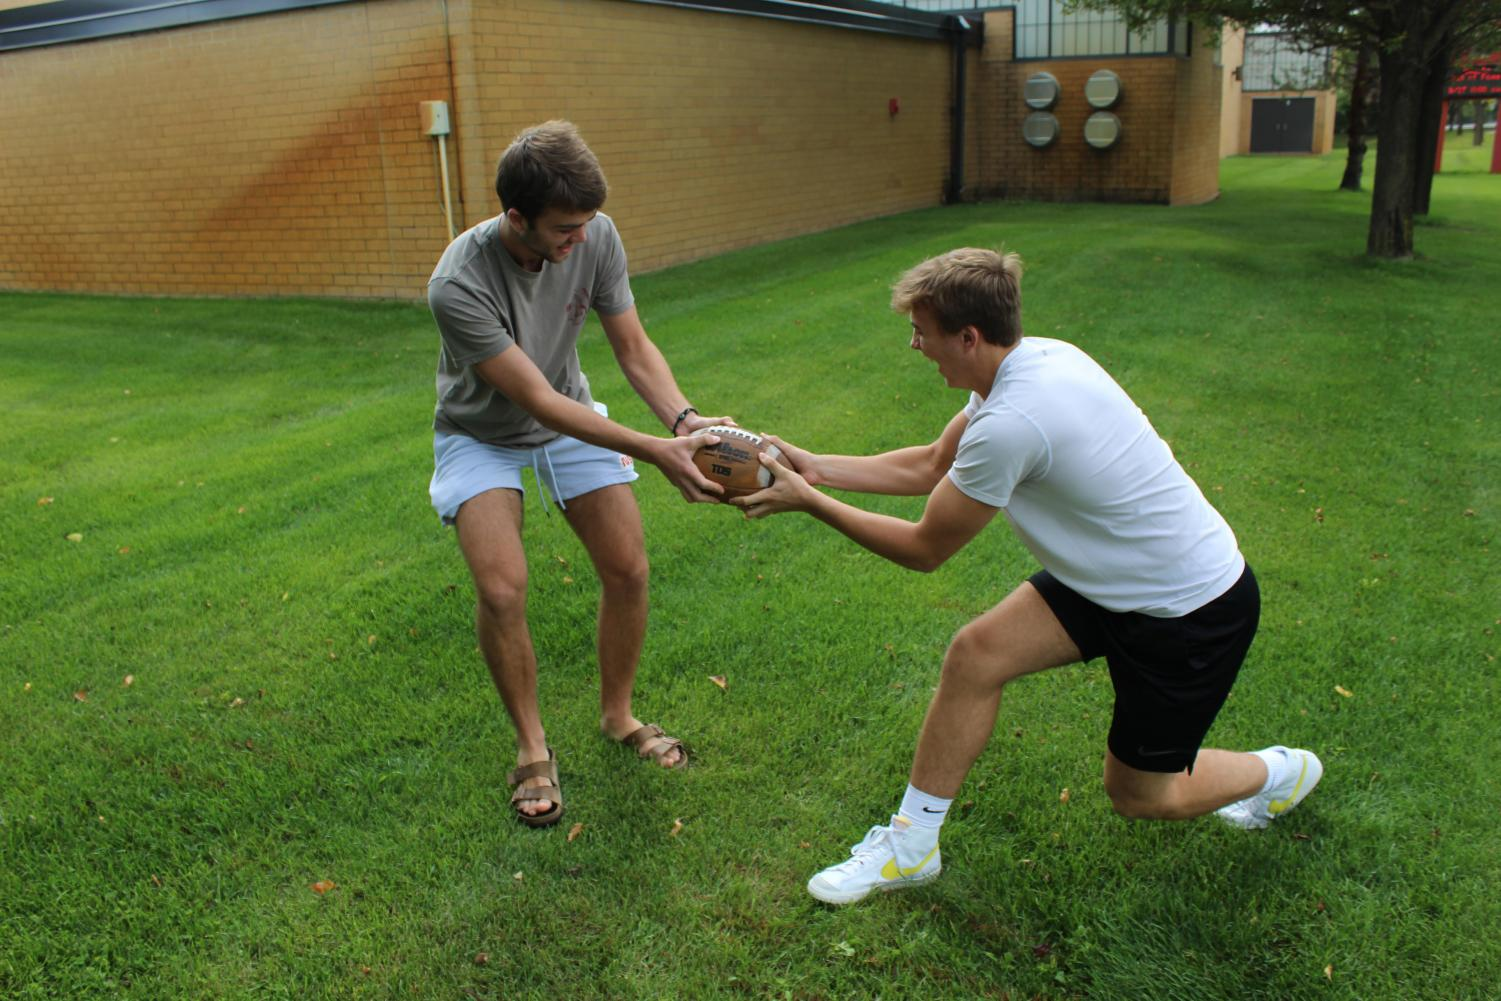 Seniors Matthew Nachbor and Zach Carden, who have differing opinions on the value of fantasy sports,  battle over a football.